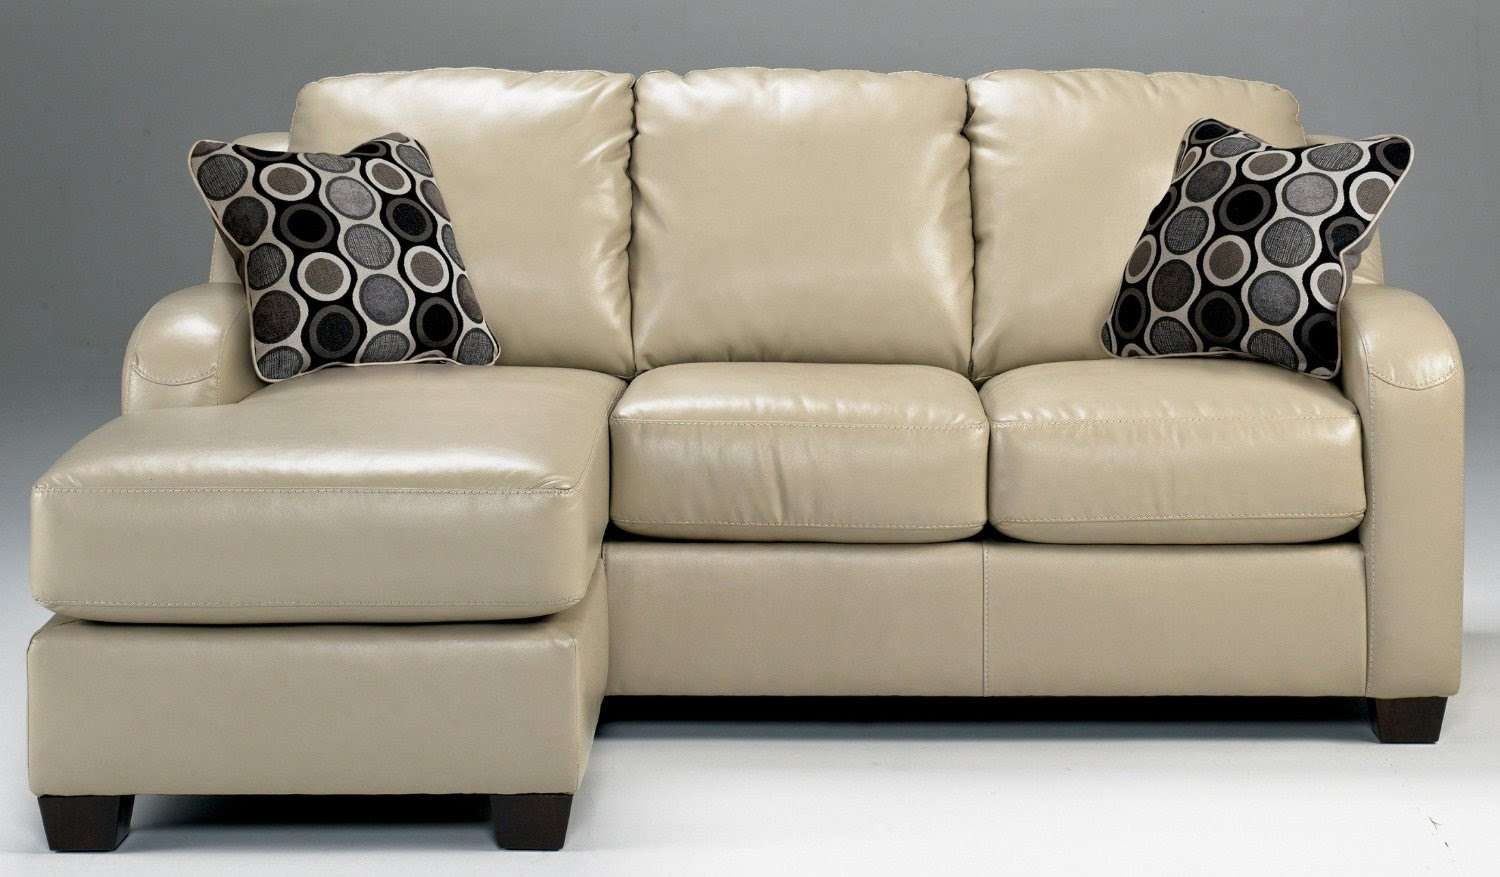 Lounger Sofa With Pull Out Trundle Where To Dispose Singapore Lounge Couch Fabulous A Chaise Is The Perfect